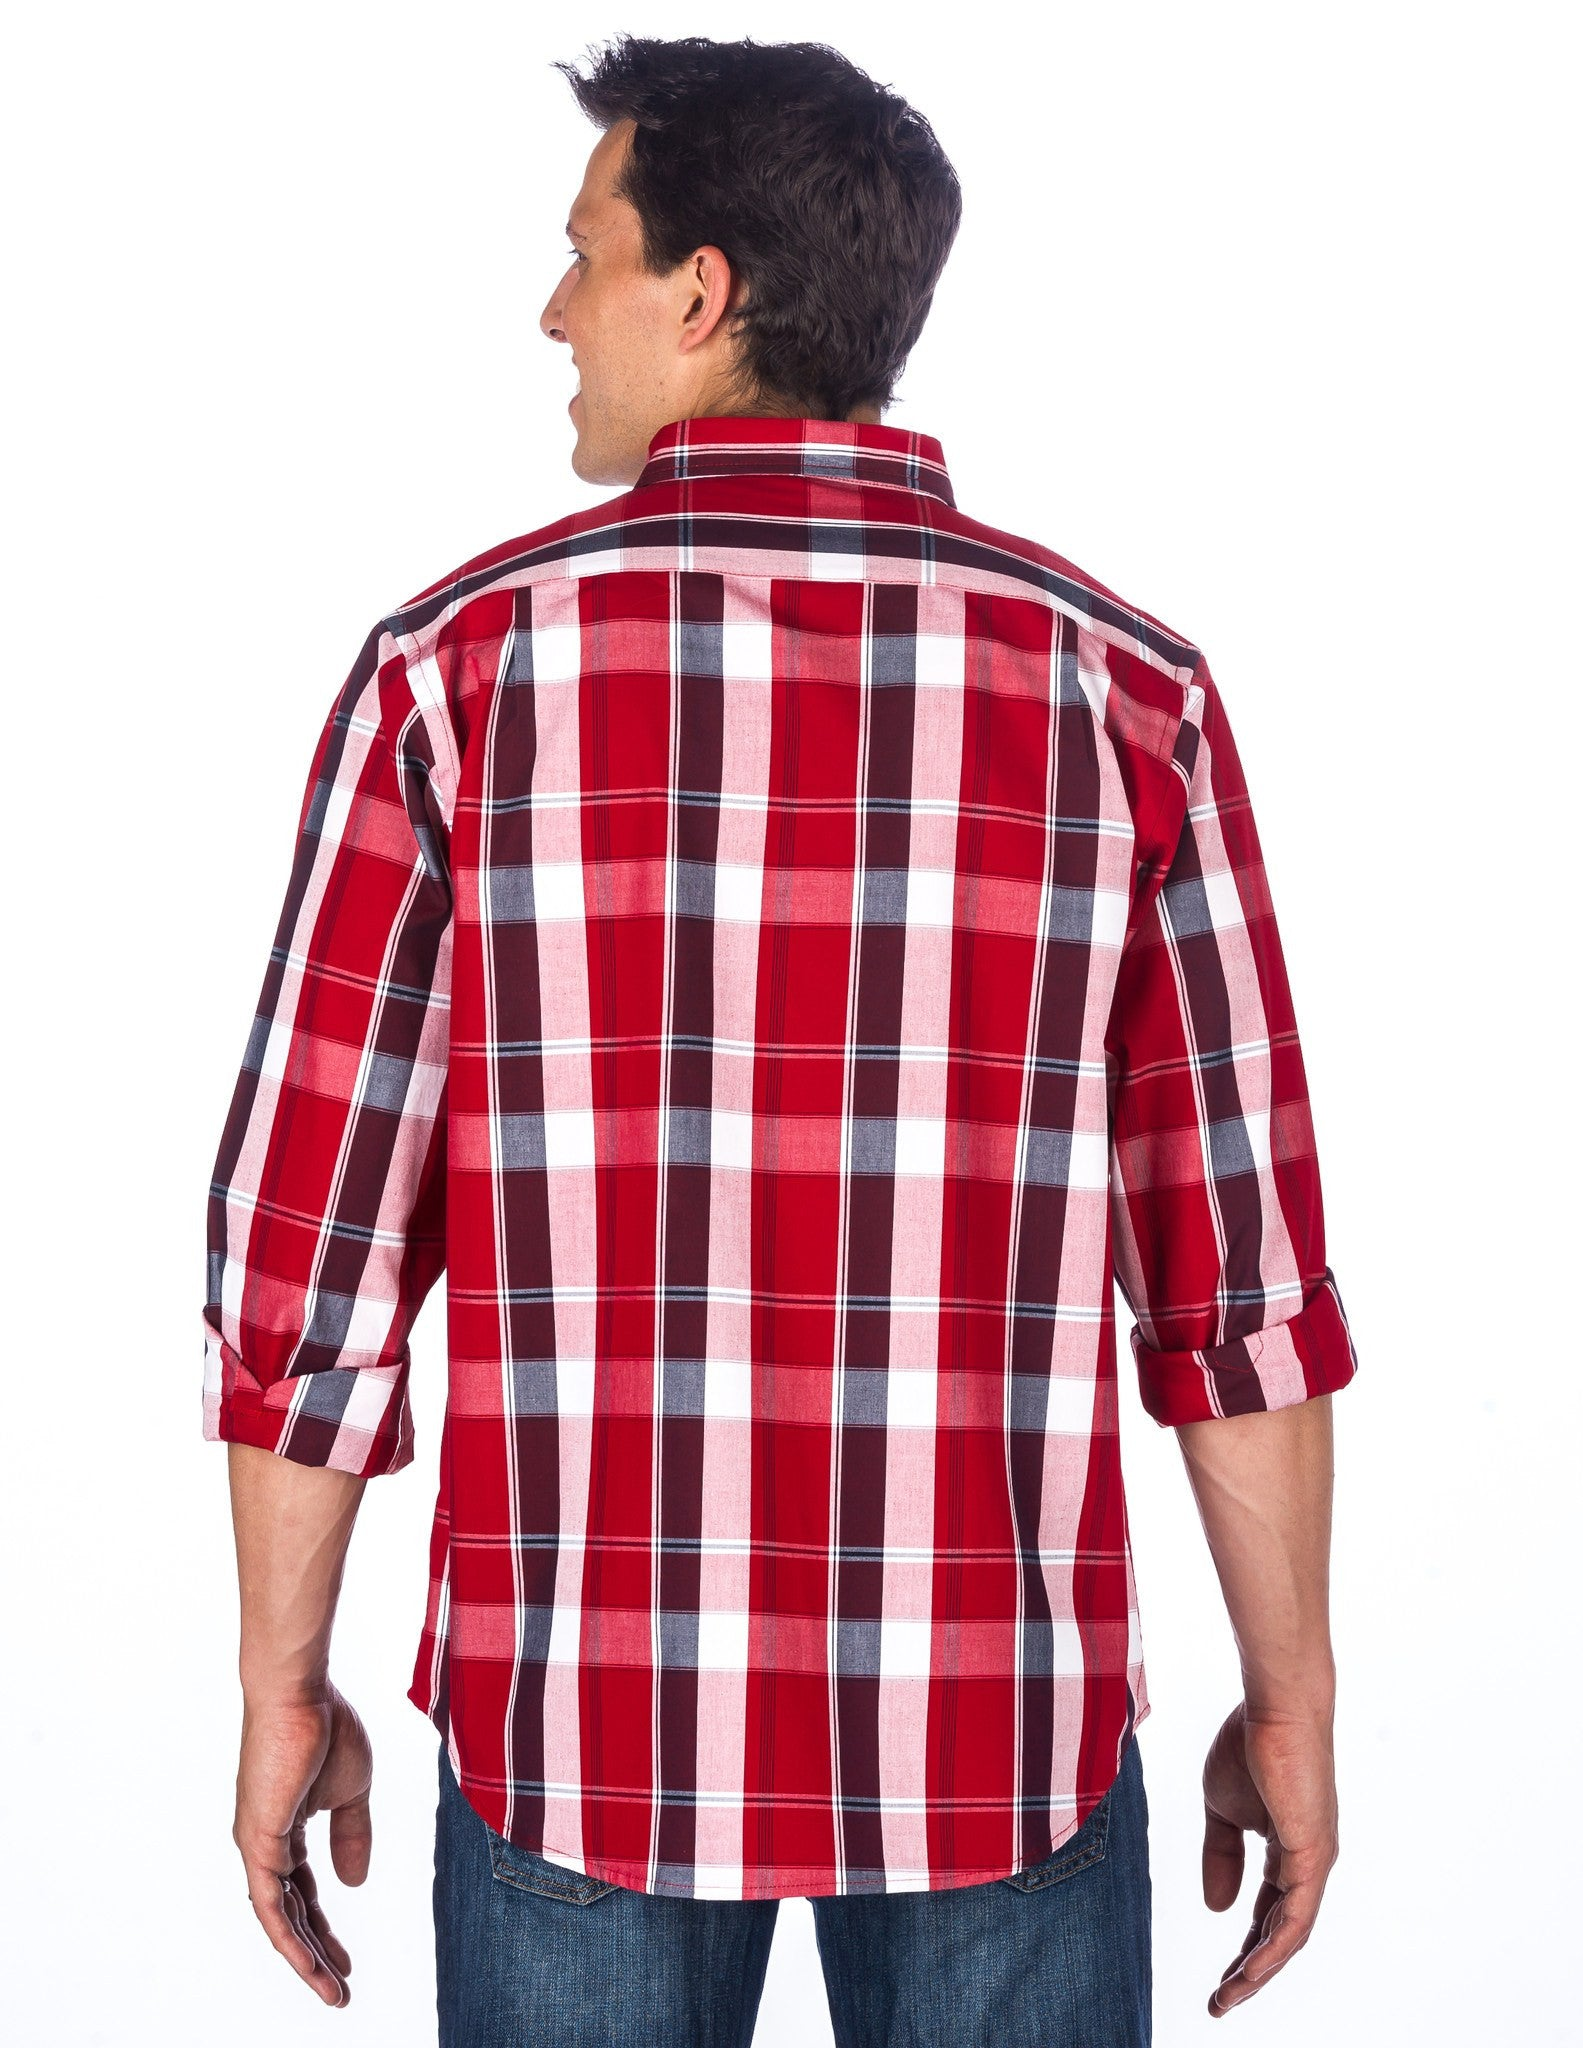 Plaid Red/White/Navy